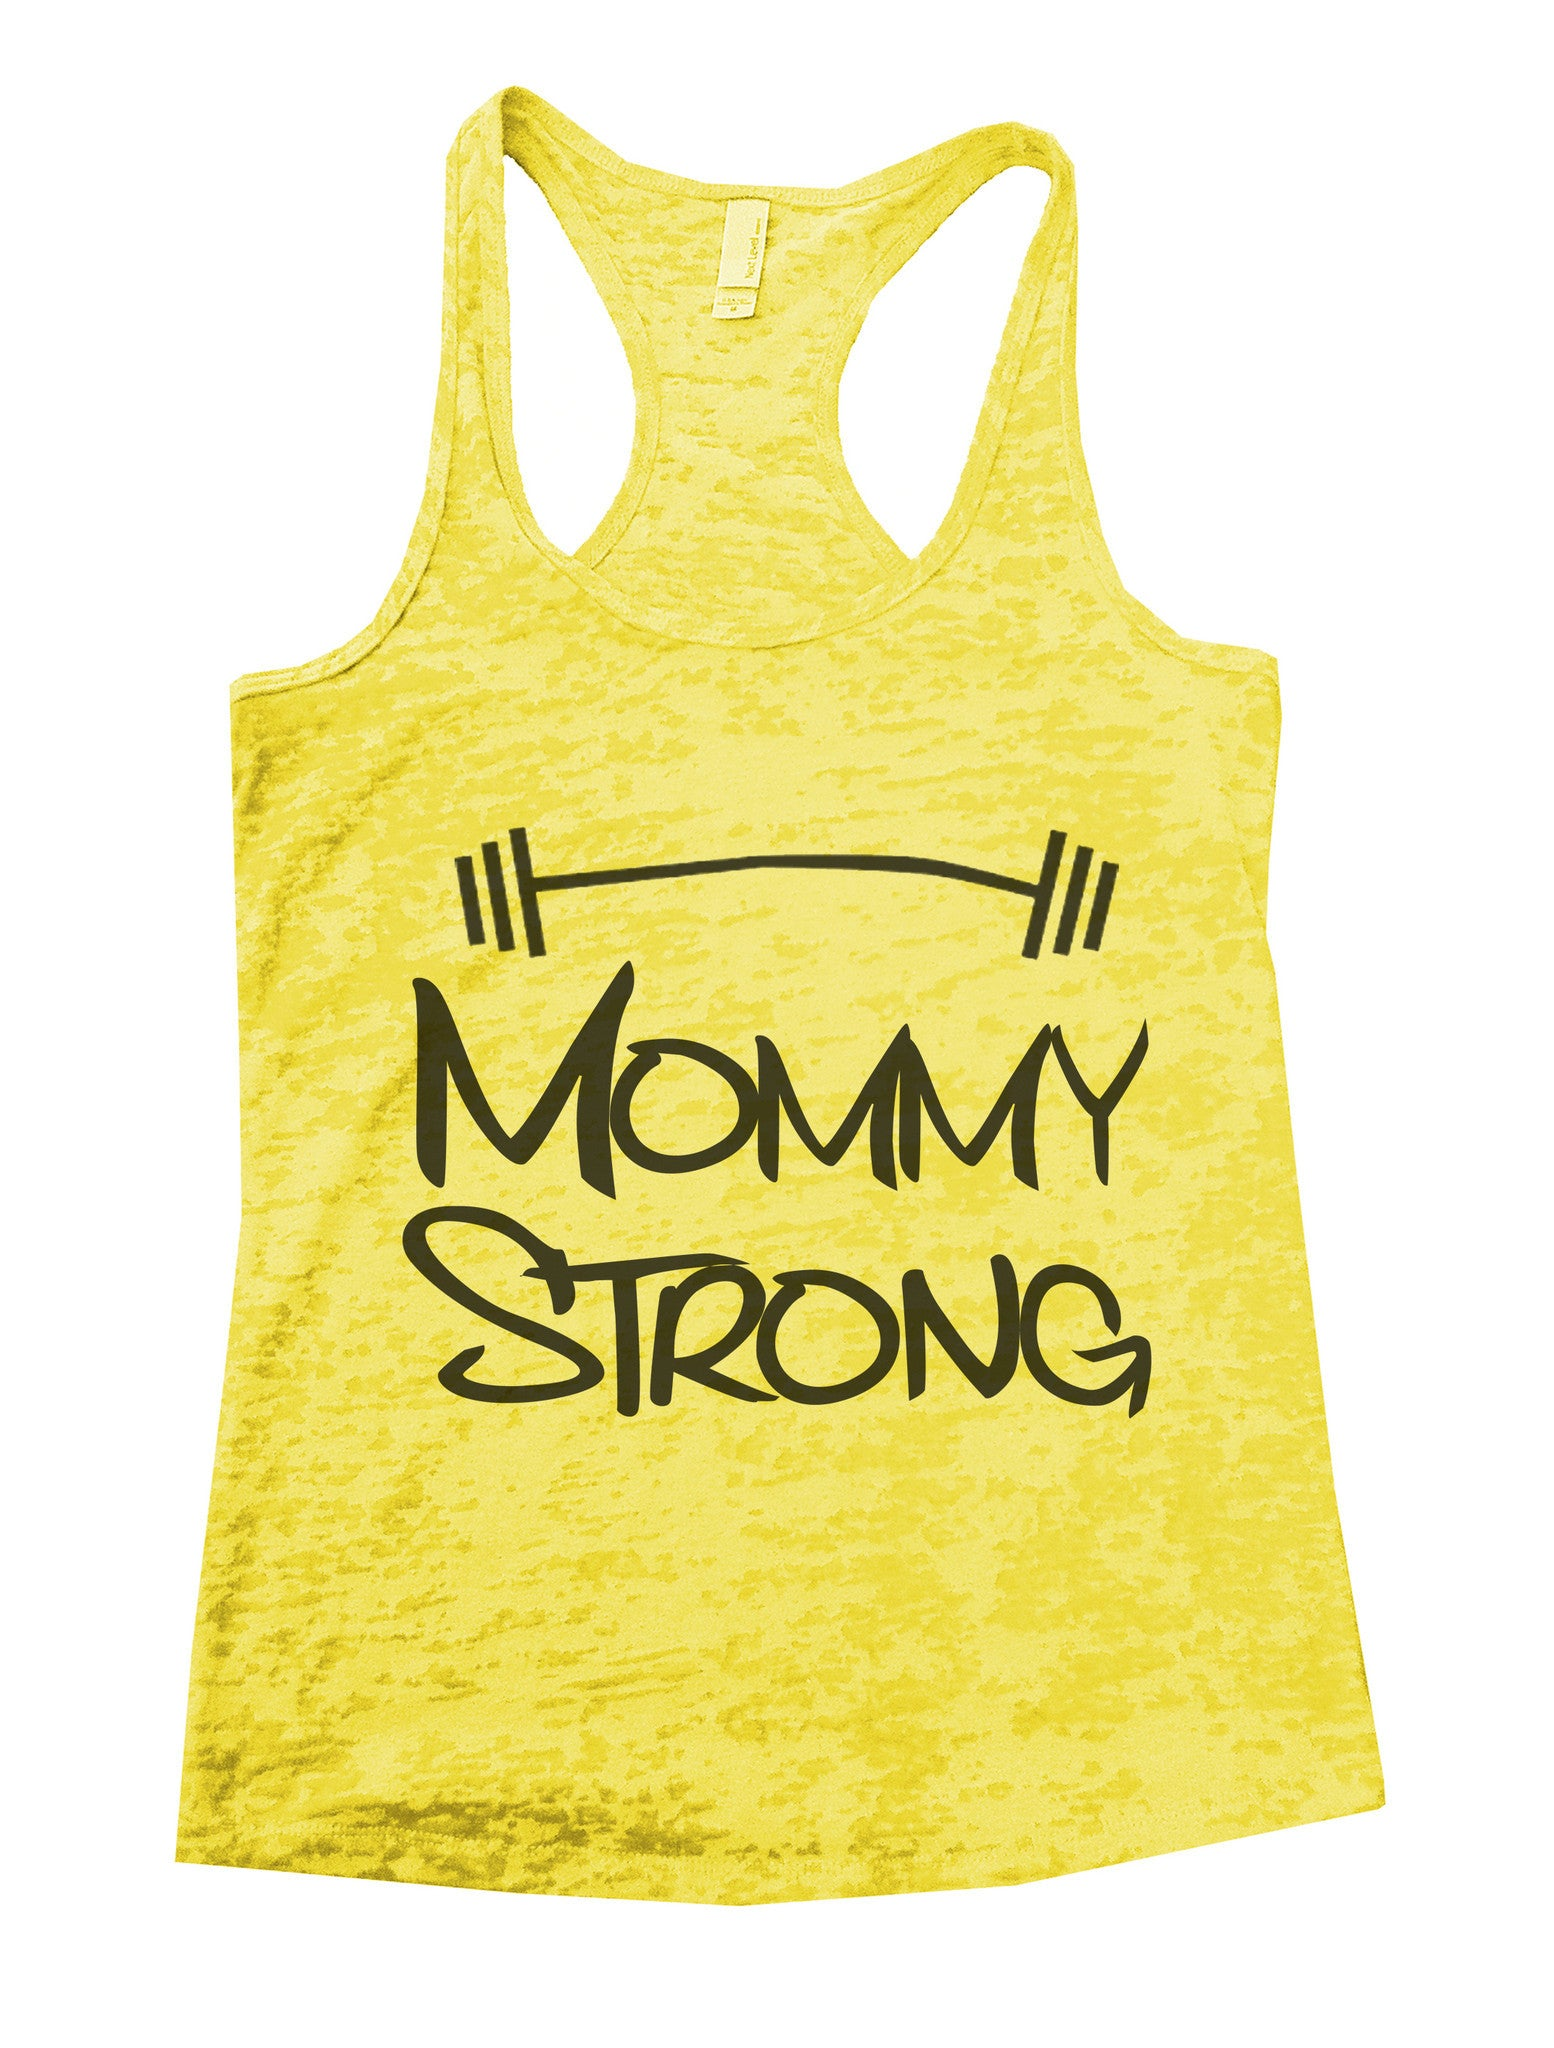 Mommy Strong Mothers Motivational Burnout Tank Top By BurnoutTankTops.com - 515 - Funny Shirts Tank Tops Burnouts and Triblends  - 6